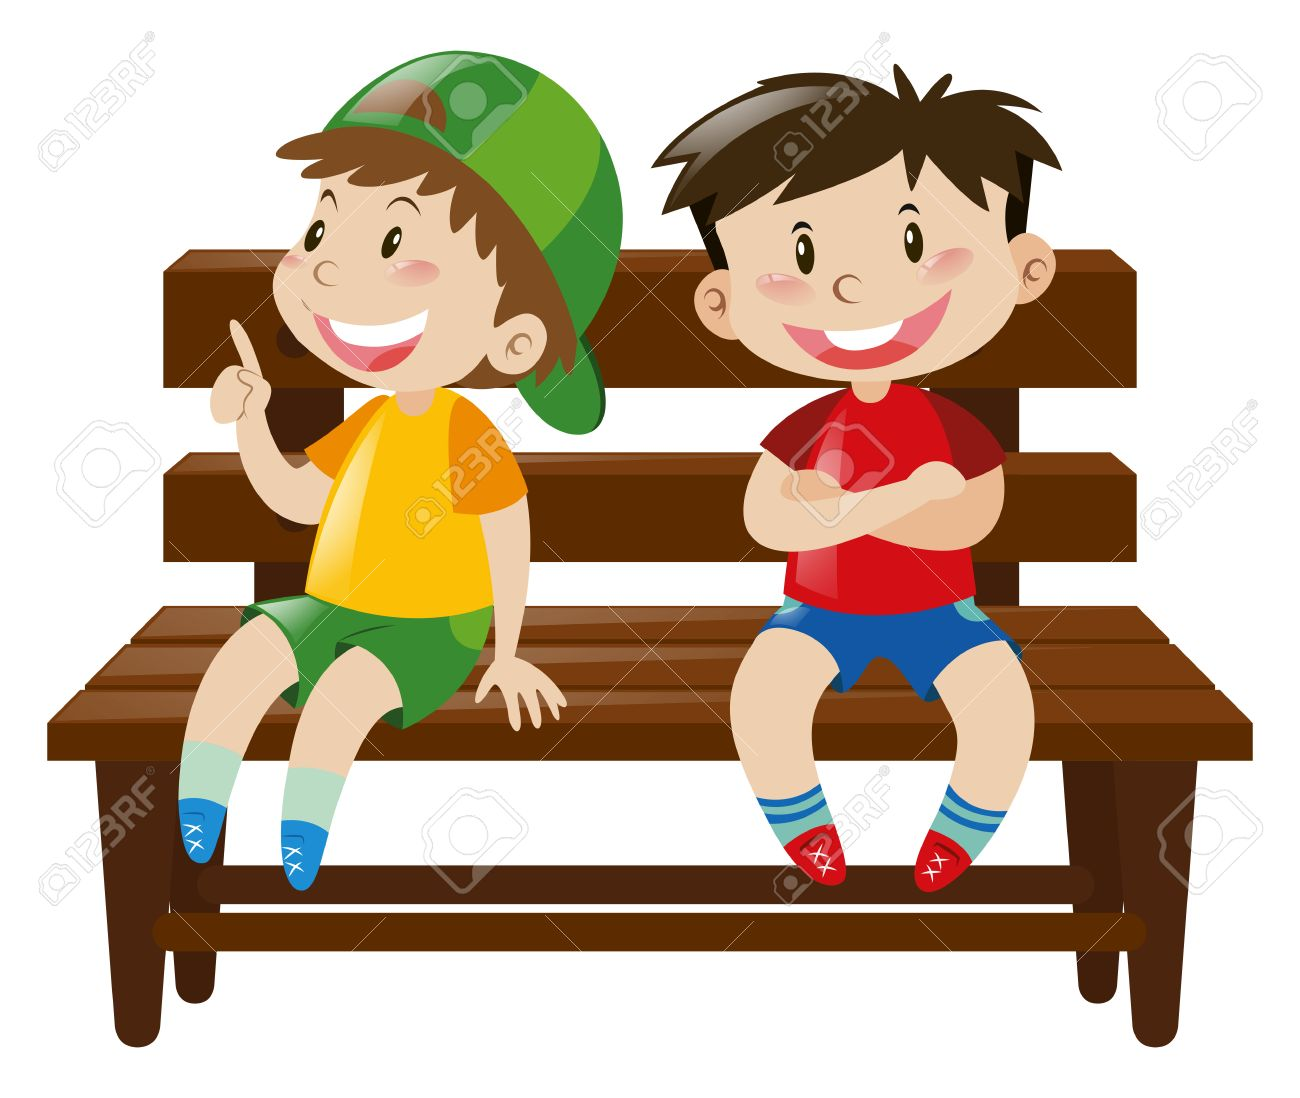 two boys sitting on wooden chair illustration royalty free cliparts rh 123rf com Baby Boy Balloon Clip Art